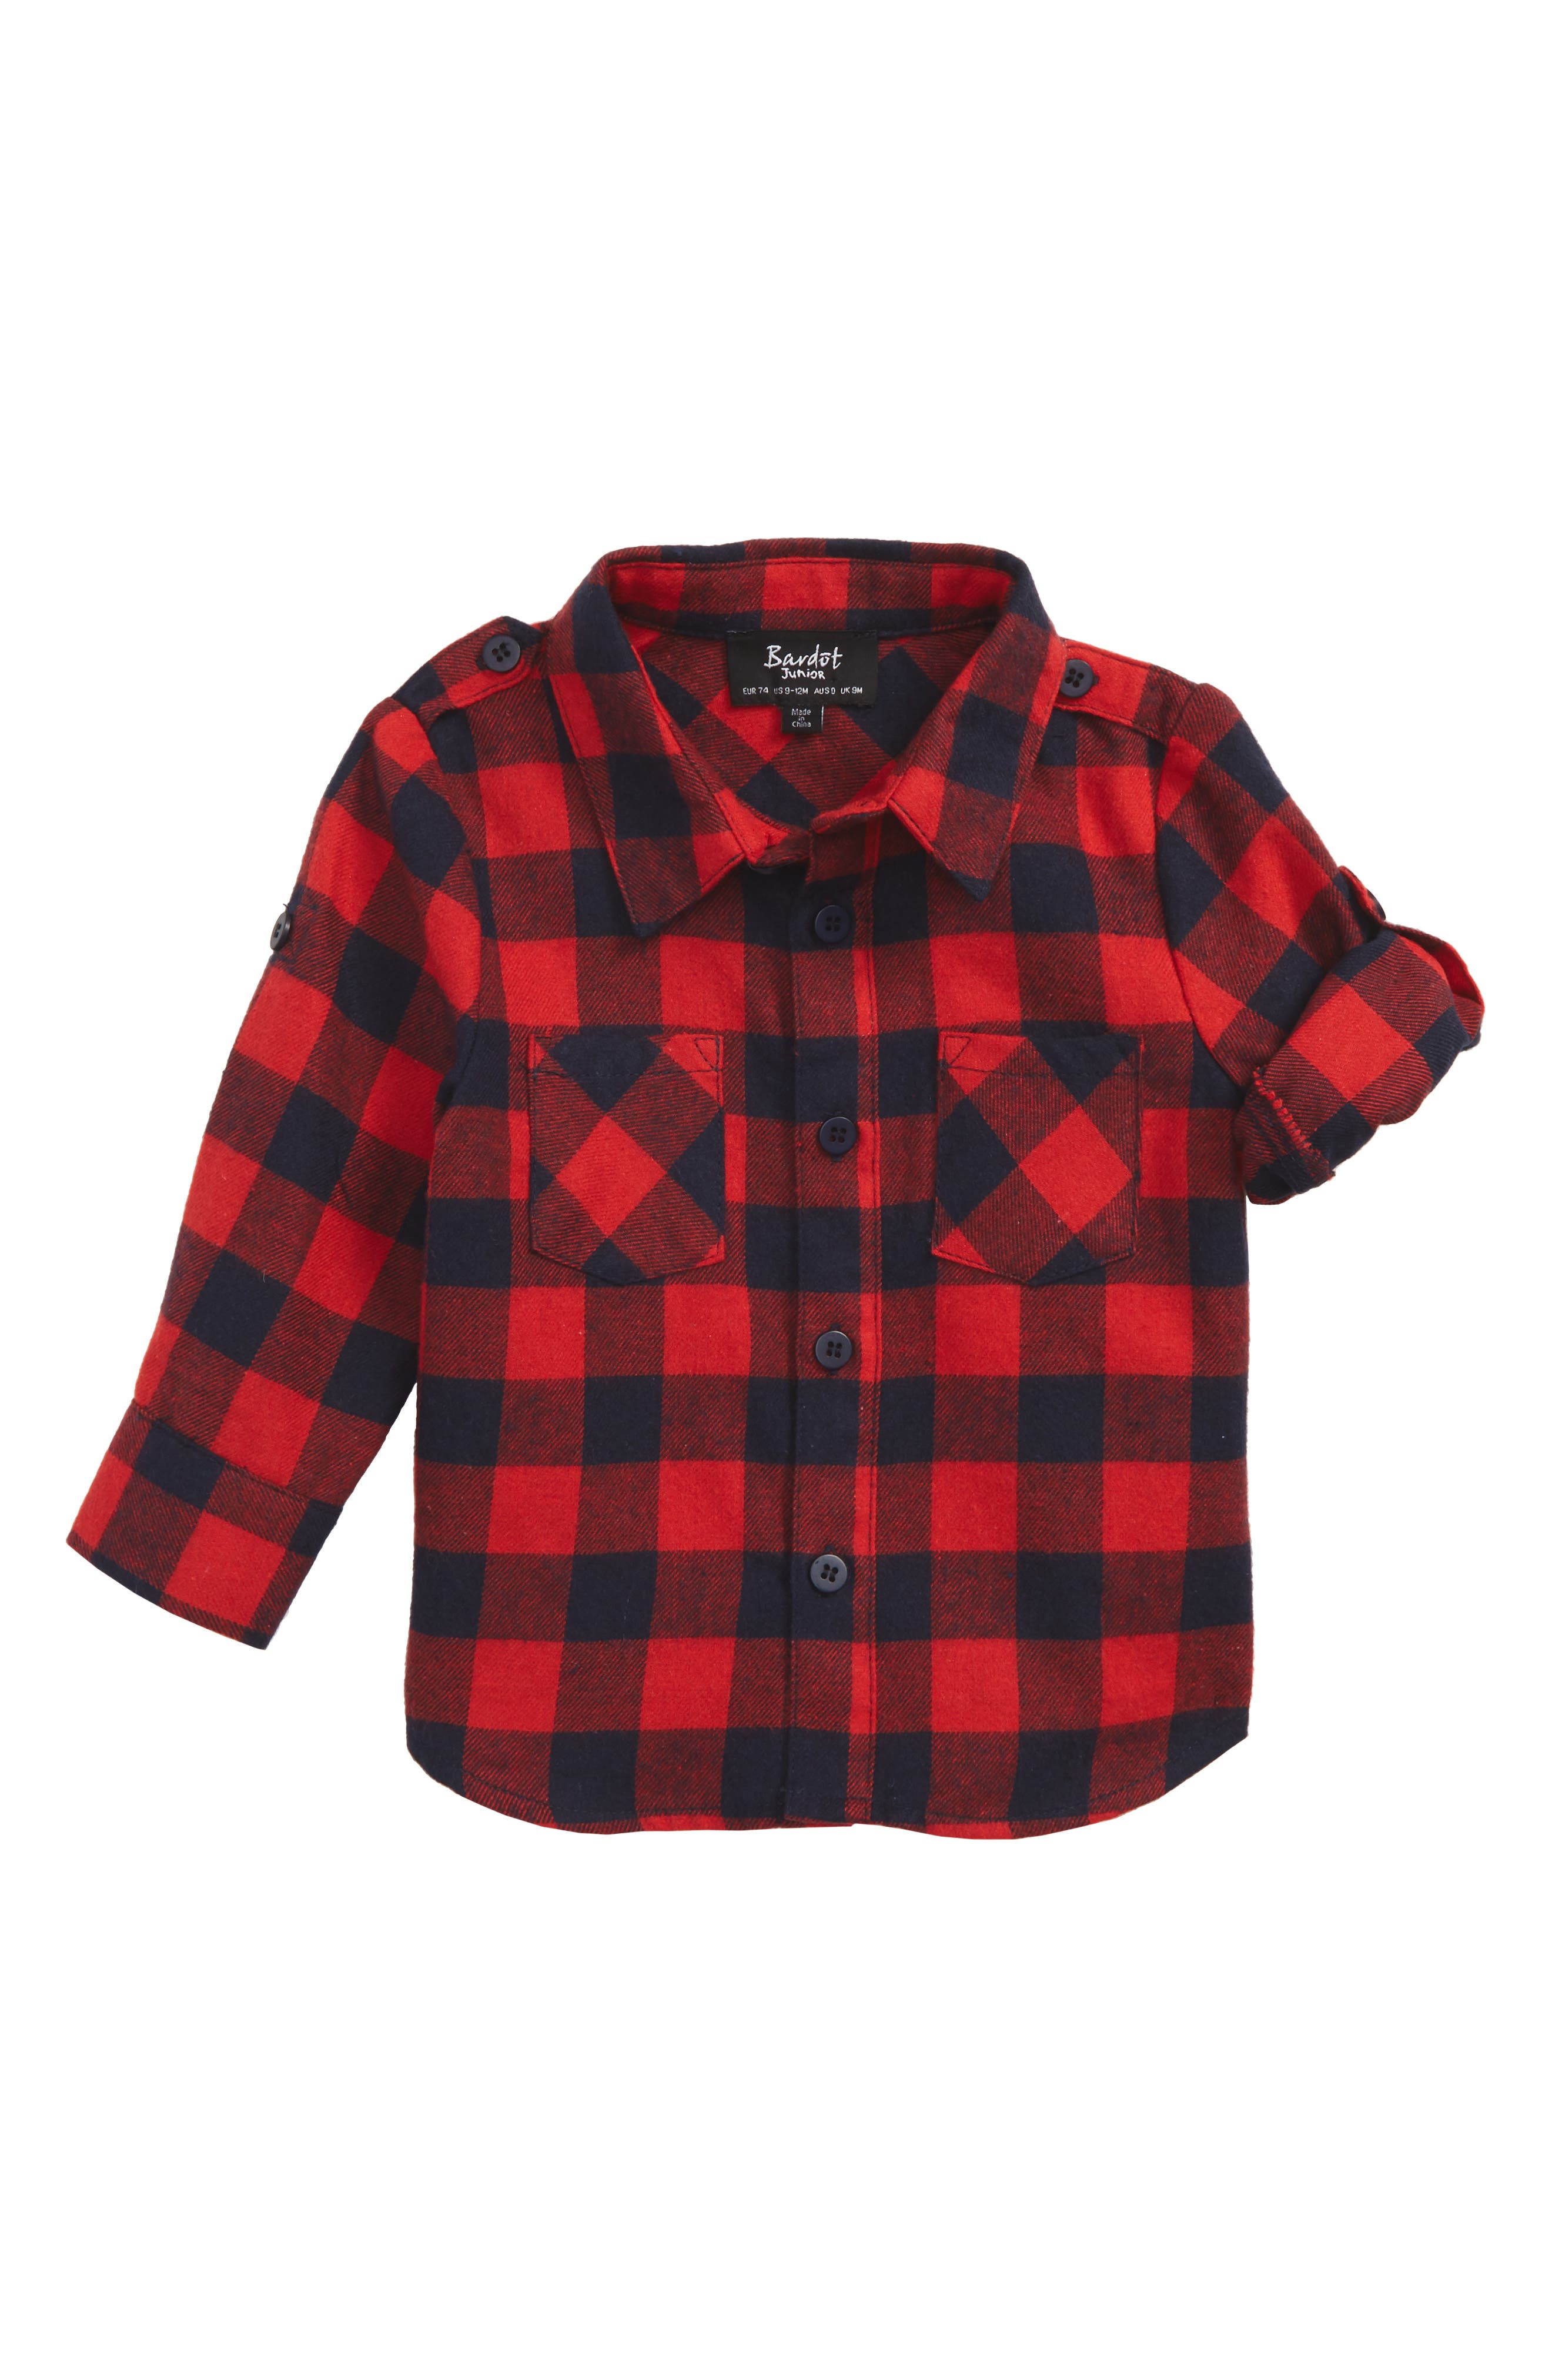 Lucky Check Woven Shirt,                         Main,                         color, Red/ Navy